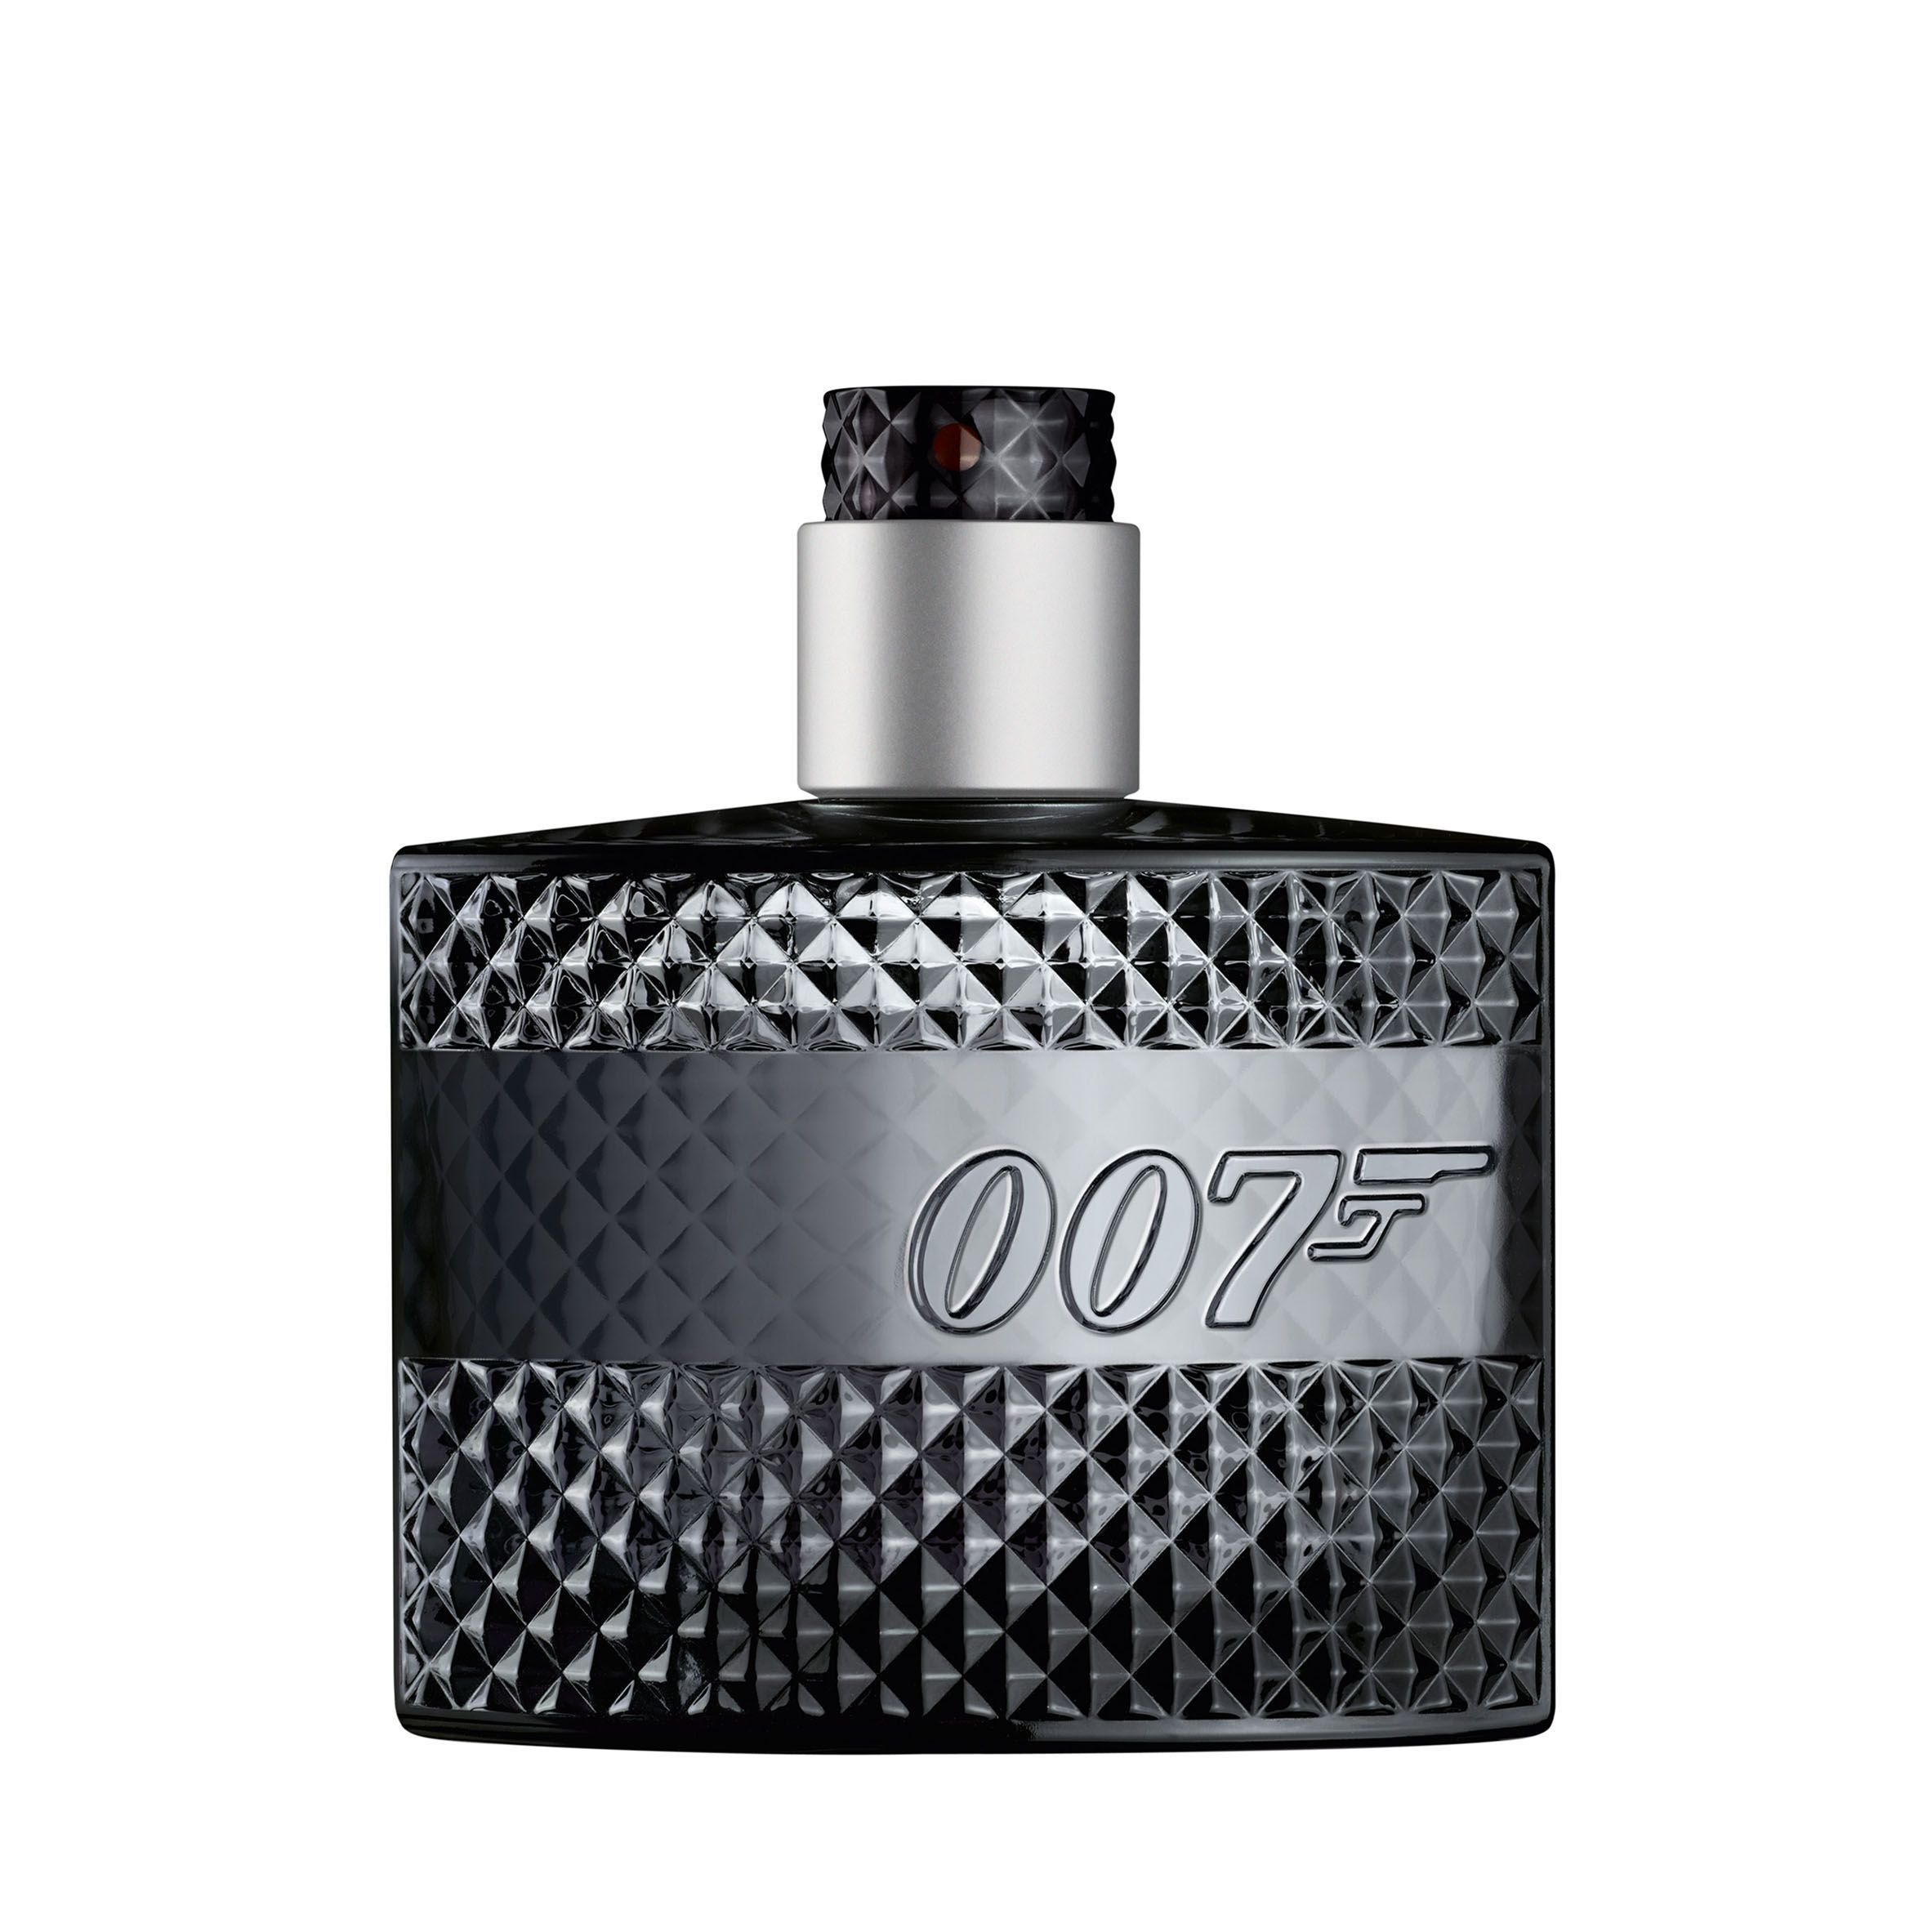 Compare retail prices of 007 James Bond 007 Eau de Toilette 75ml to get the best deal online